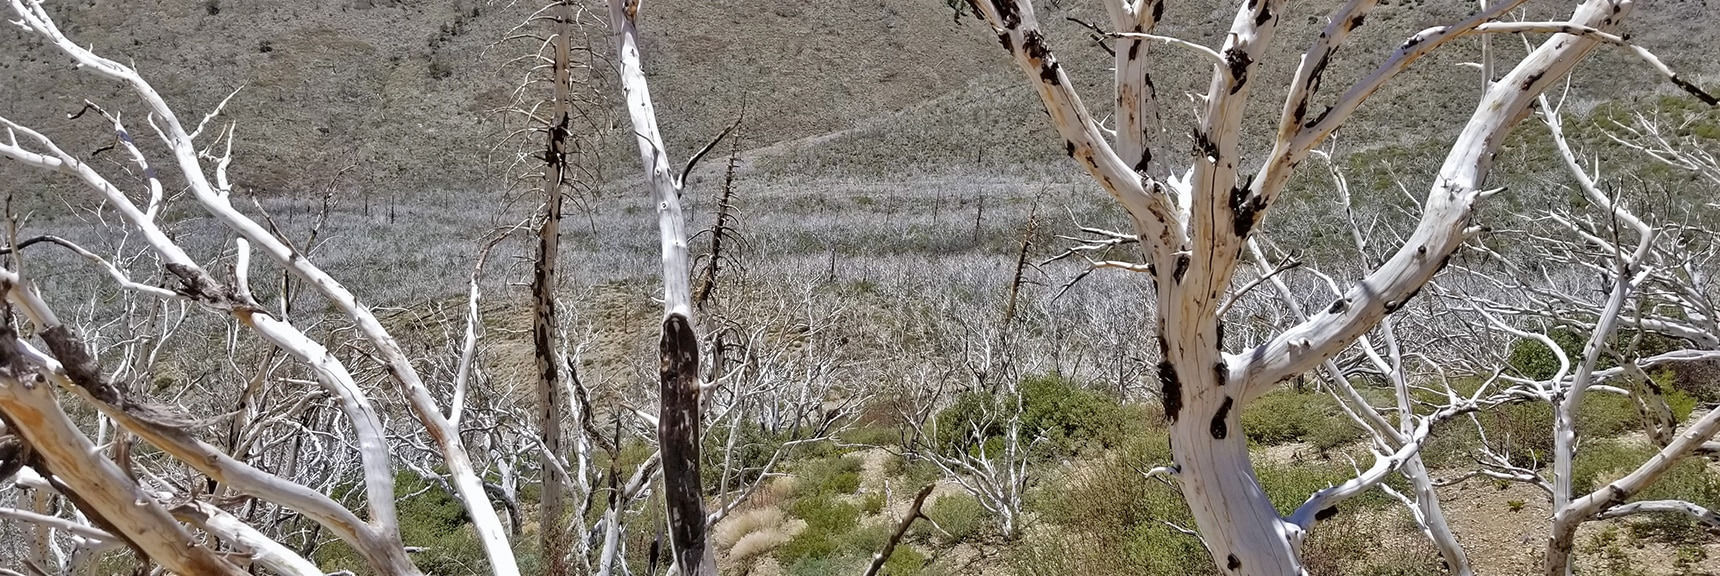 View of Upper Lovell Canyon Wash Area. Lots of Burned Out Trees and Brush | Harris Mountain from Lovell Canyon Nevada